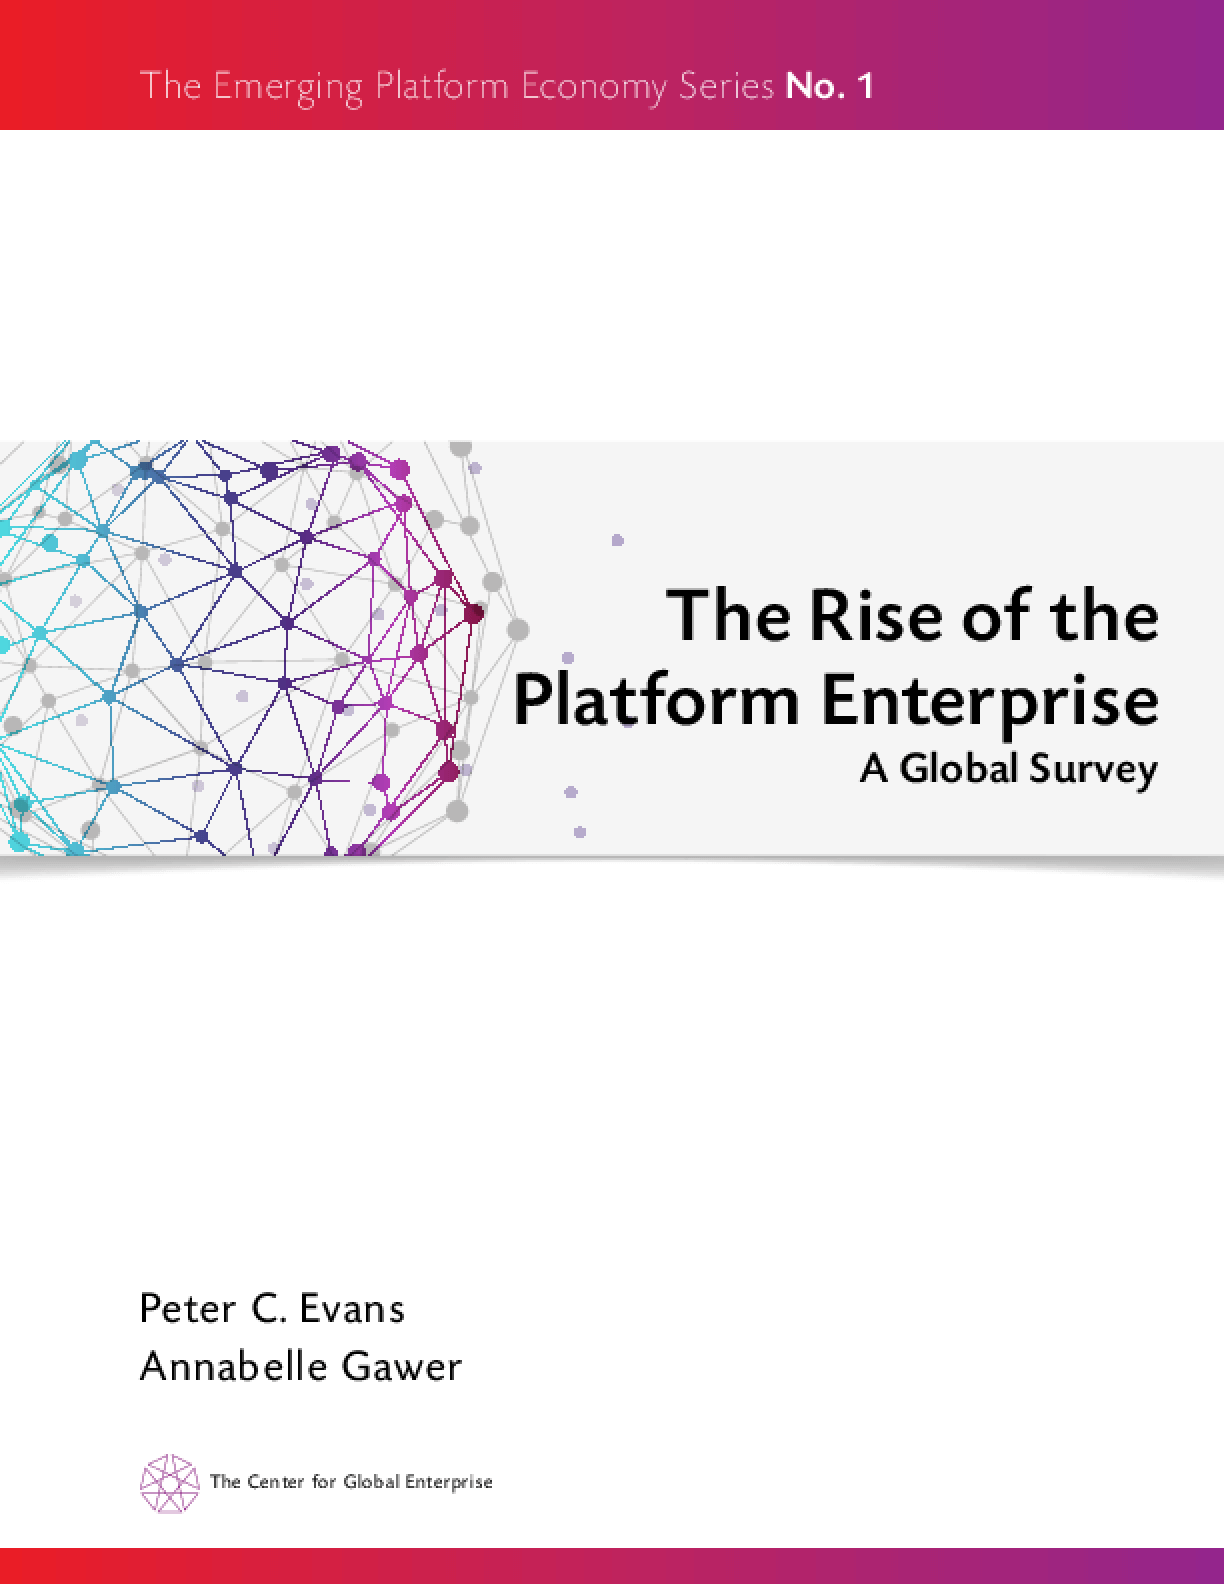 The Rise of the Platform Enterprise: A Global Survey